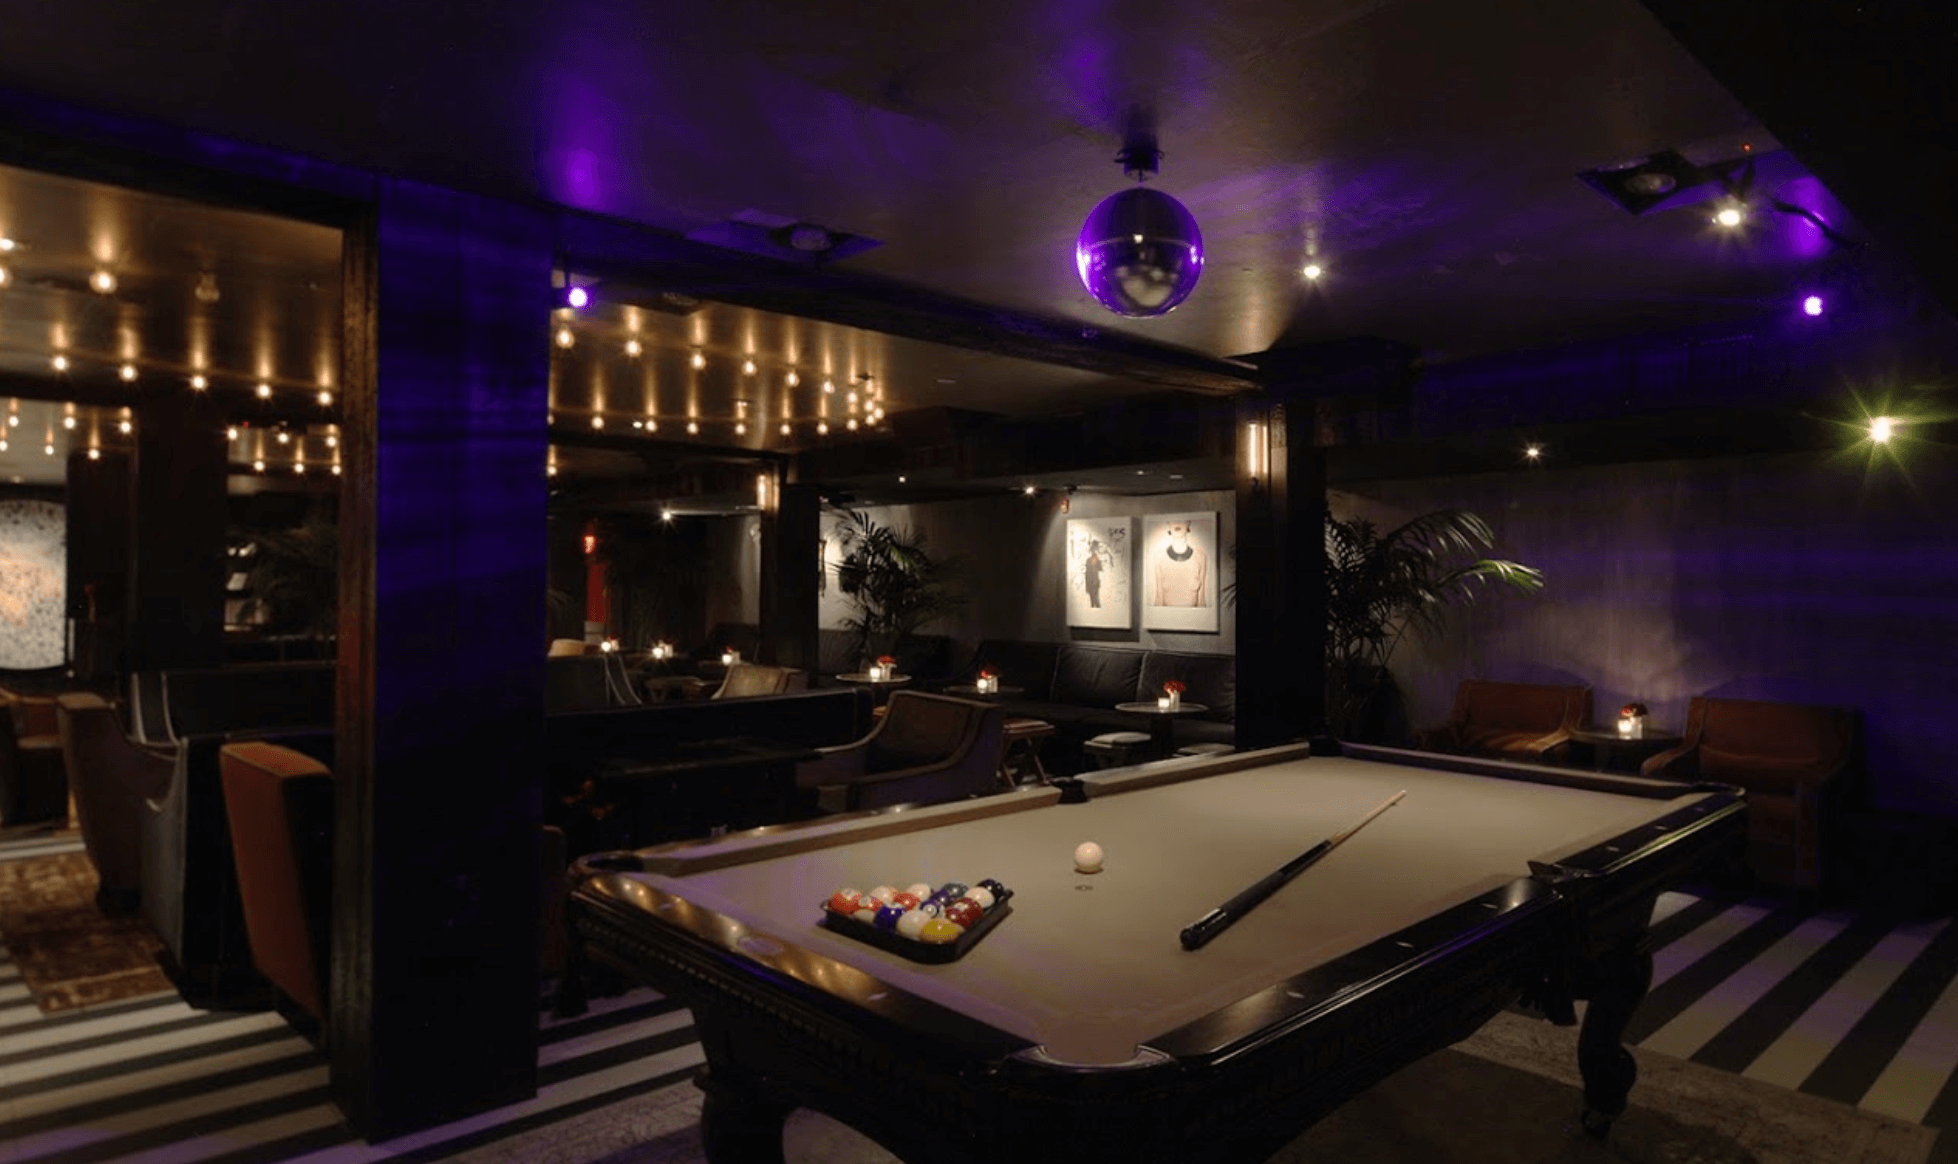 Nightlife Bars Up & Down Pool Table